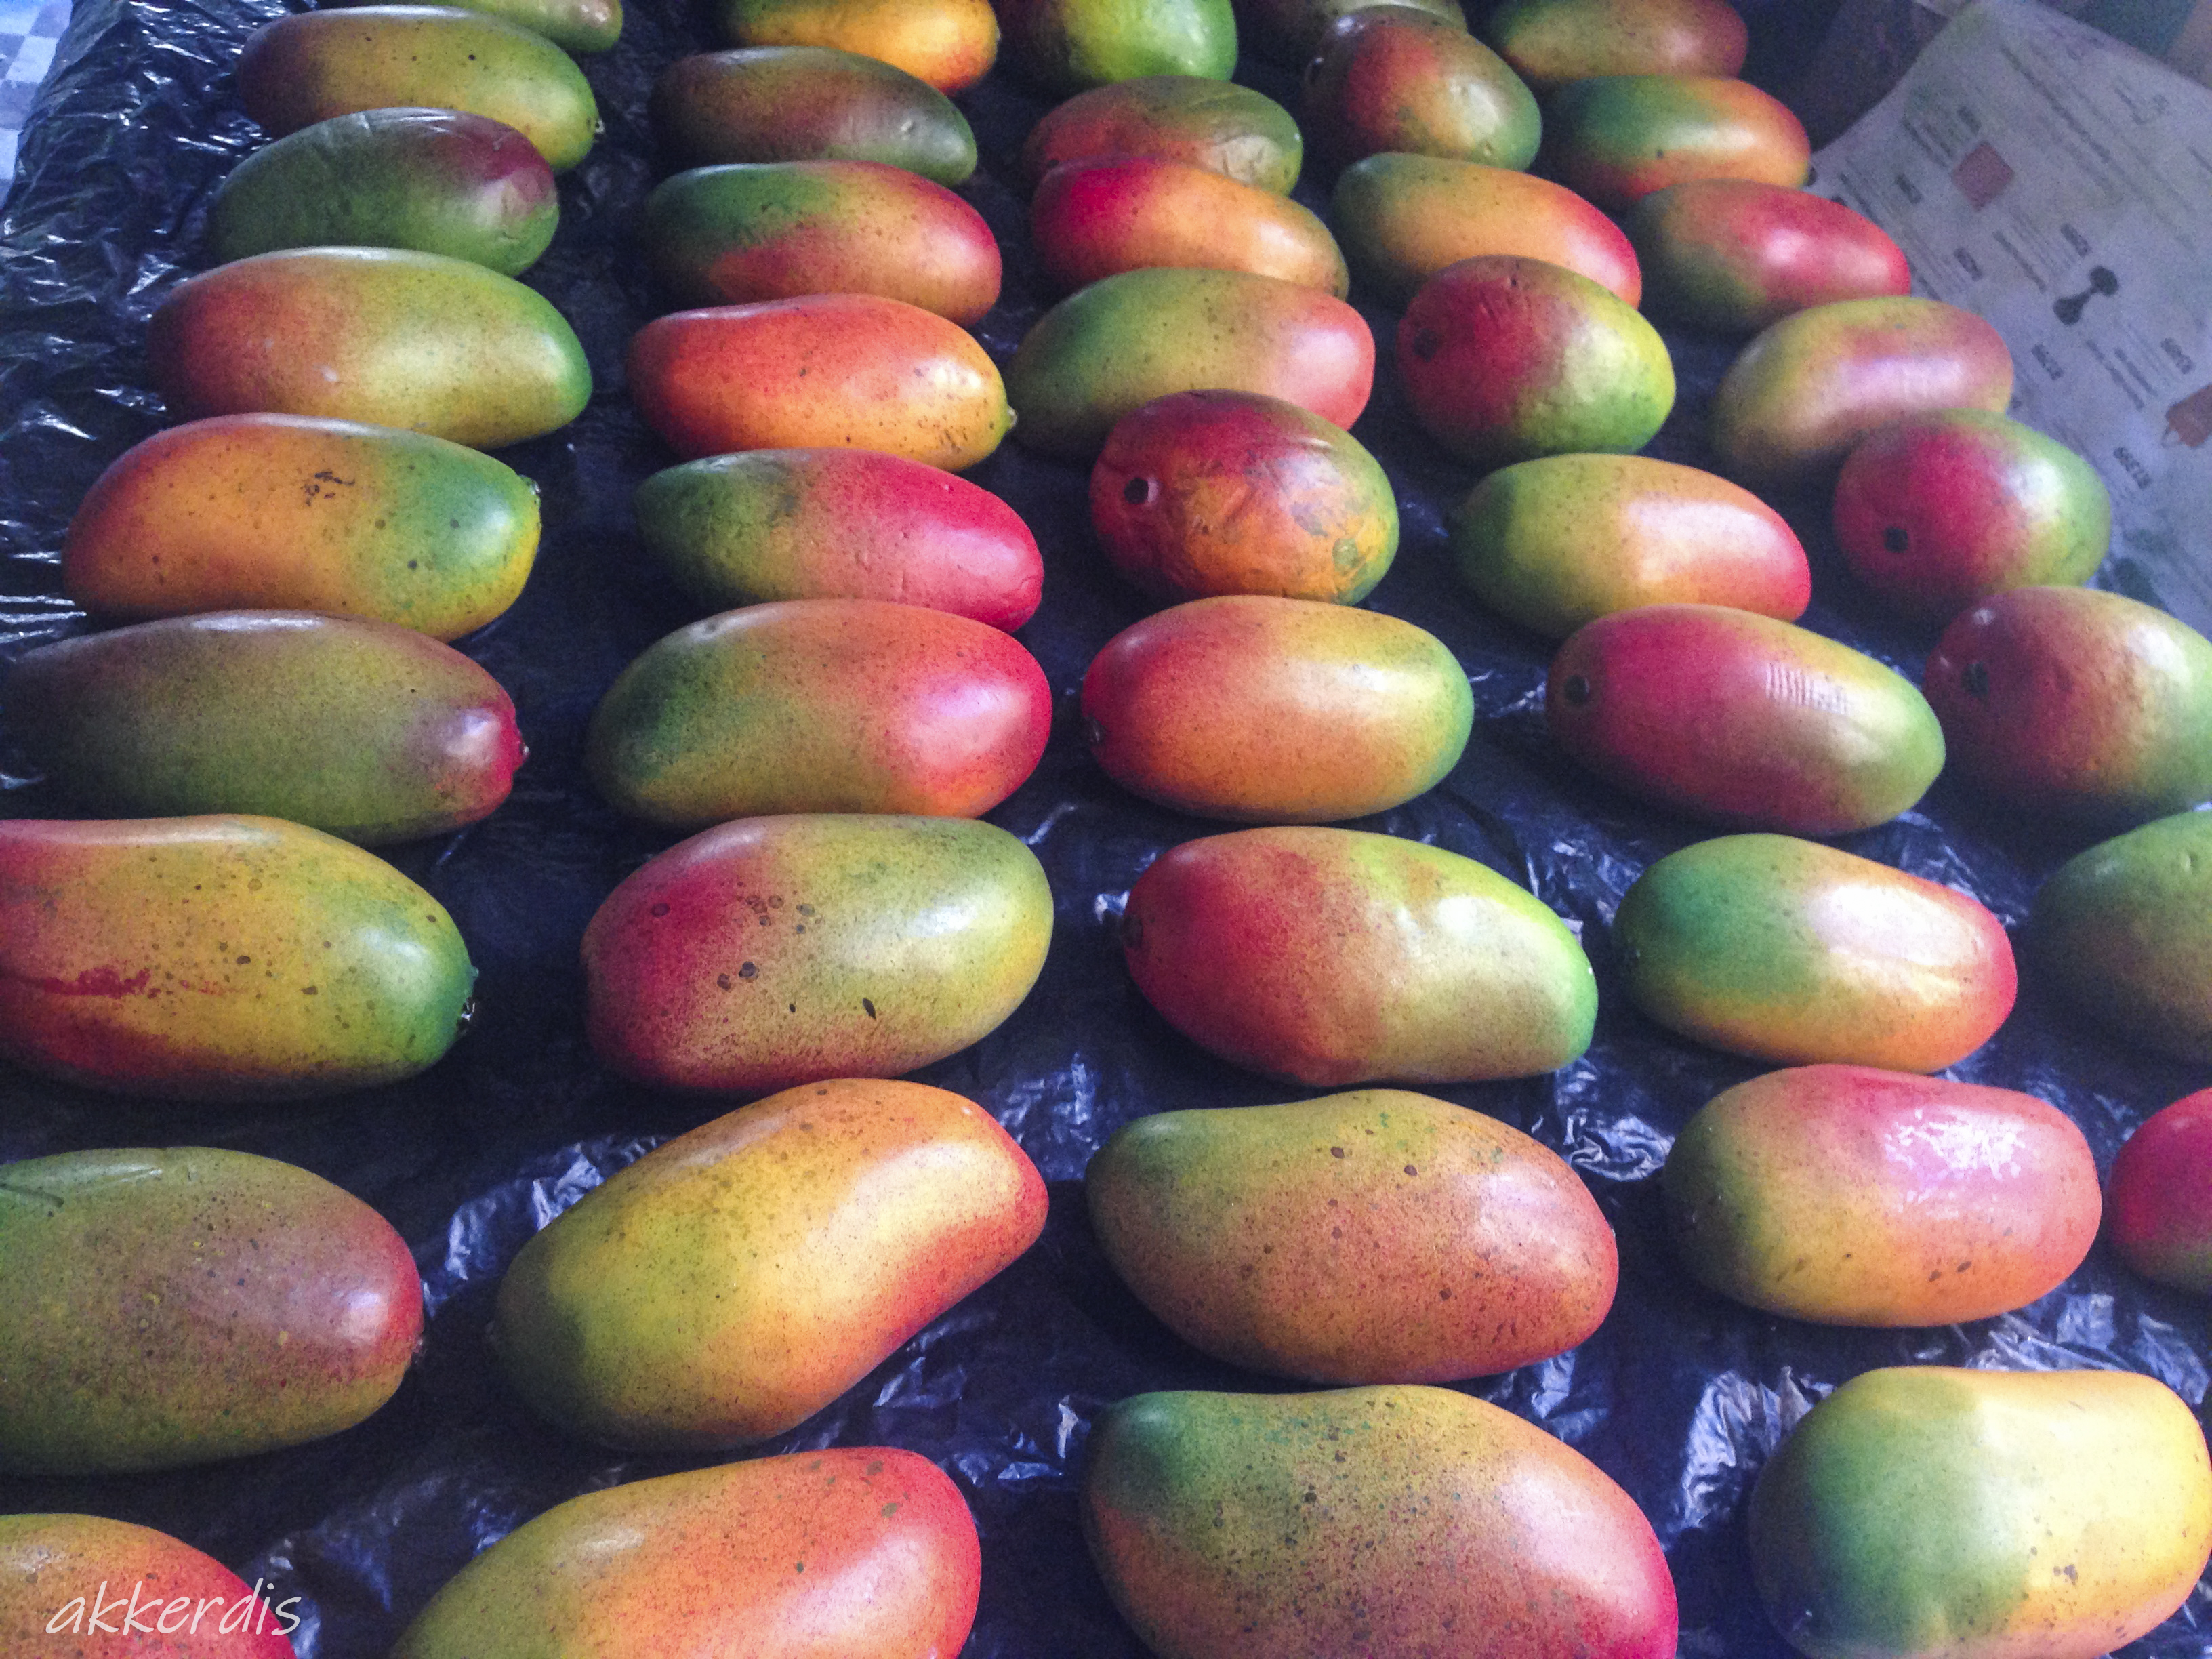 Fabricated mangos